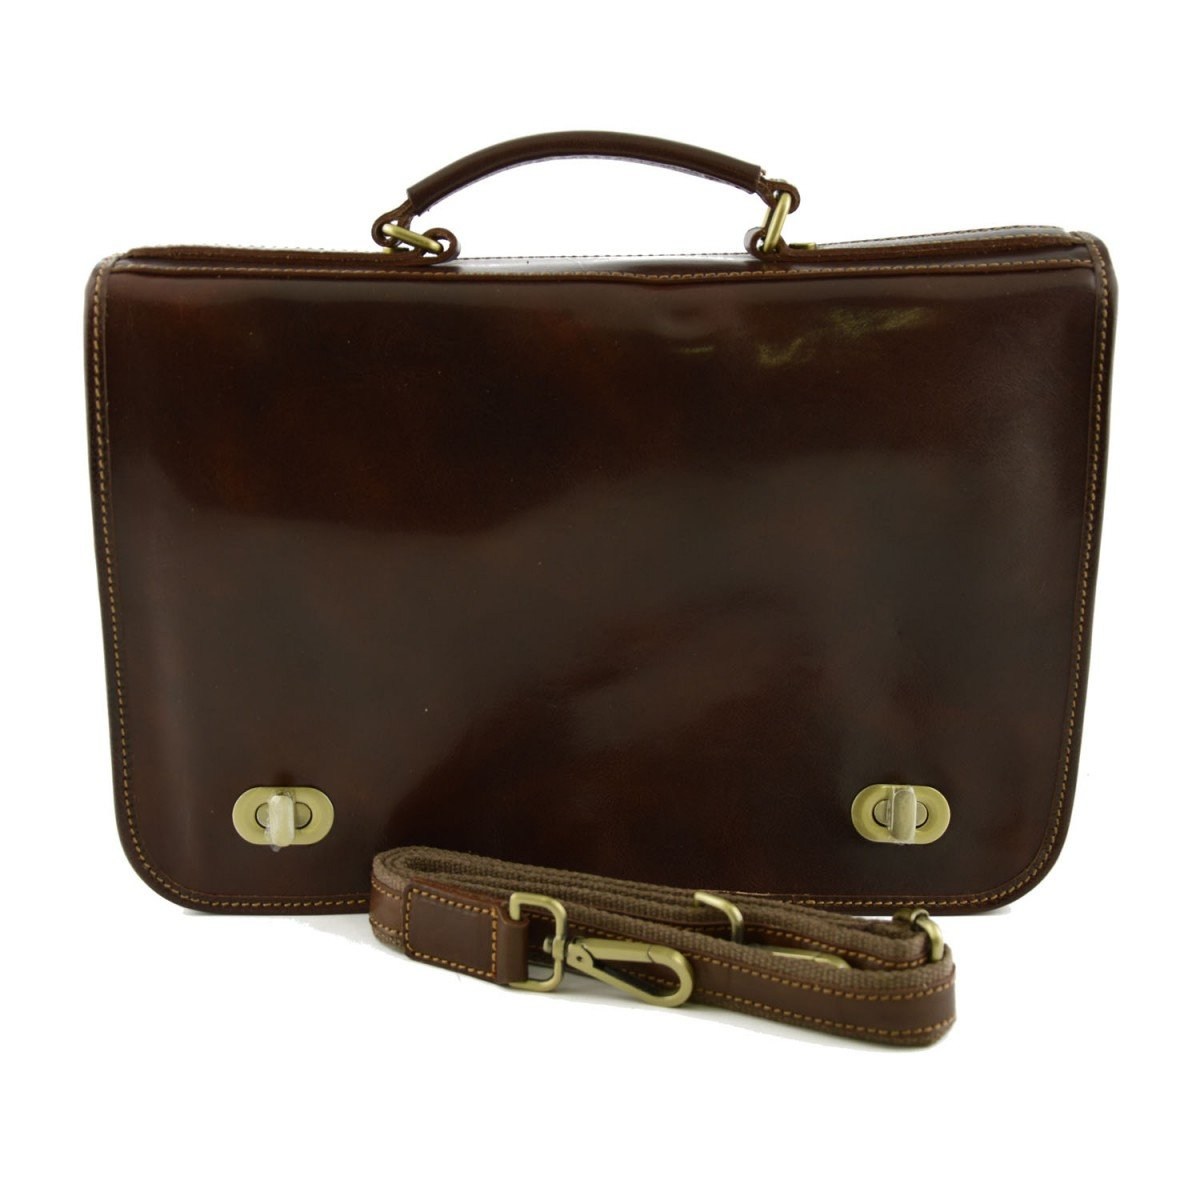 Made In Italy Genuine Leather Business Briefcase, 2 Compartments Color Brown - Business Bag B01N2S30SO